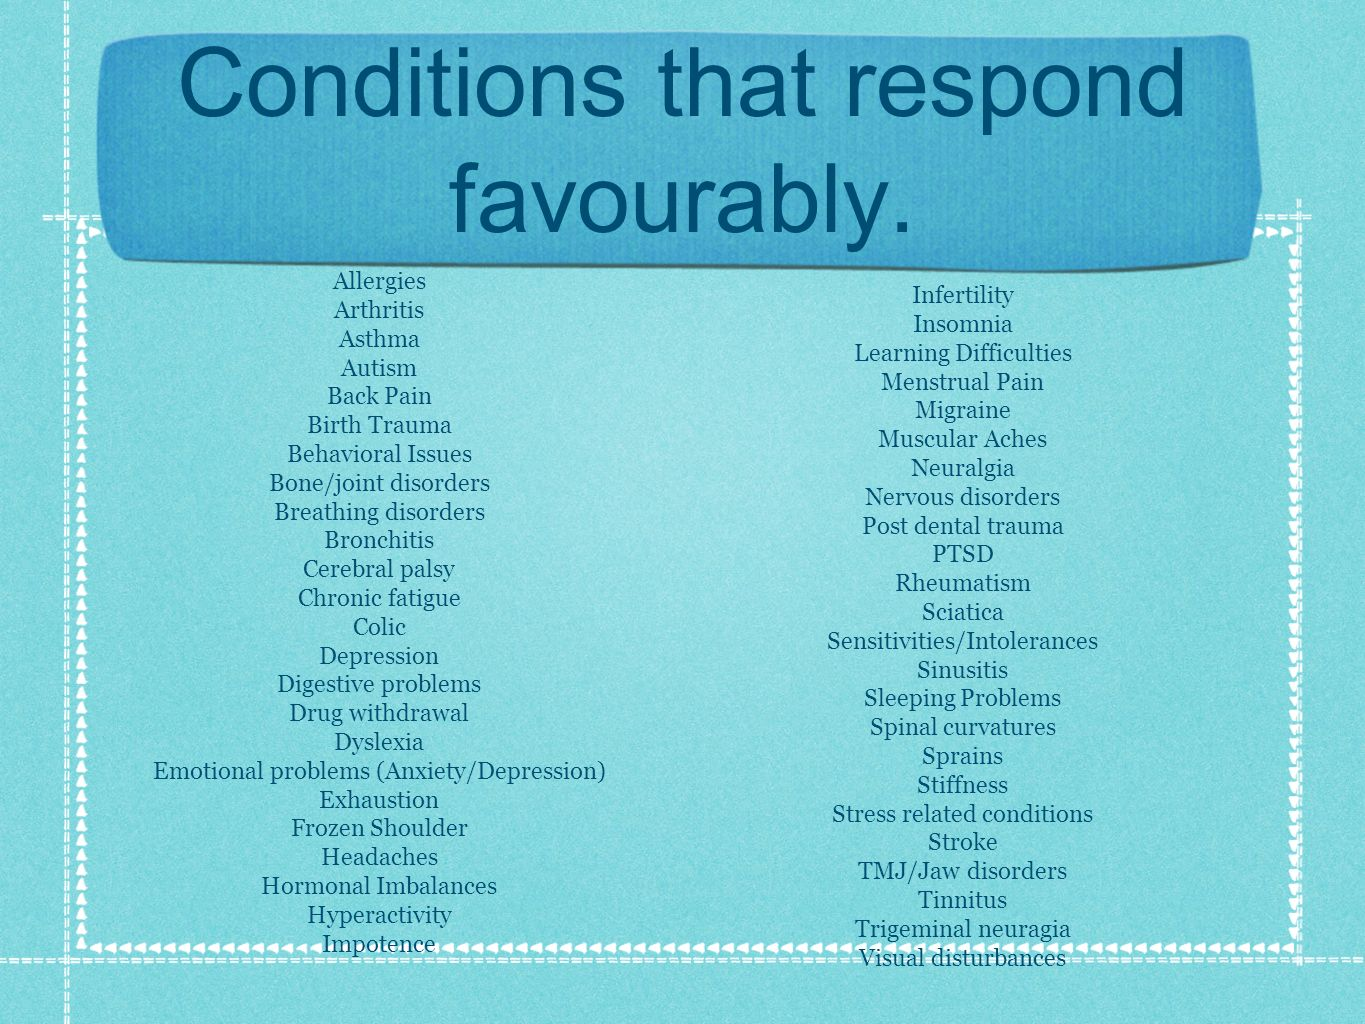 Conditions that respond favourably.